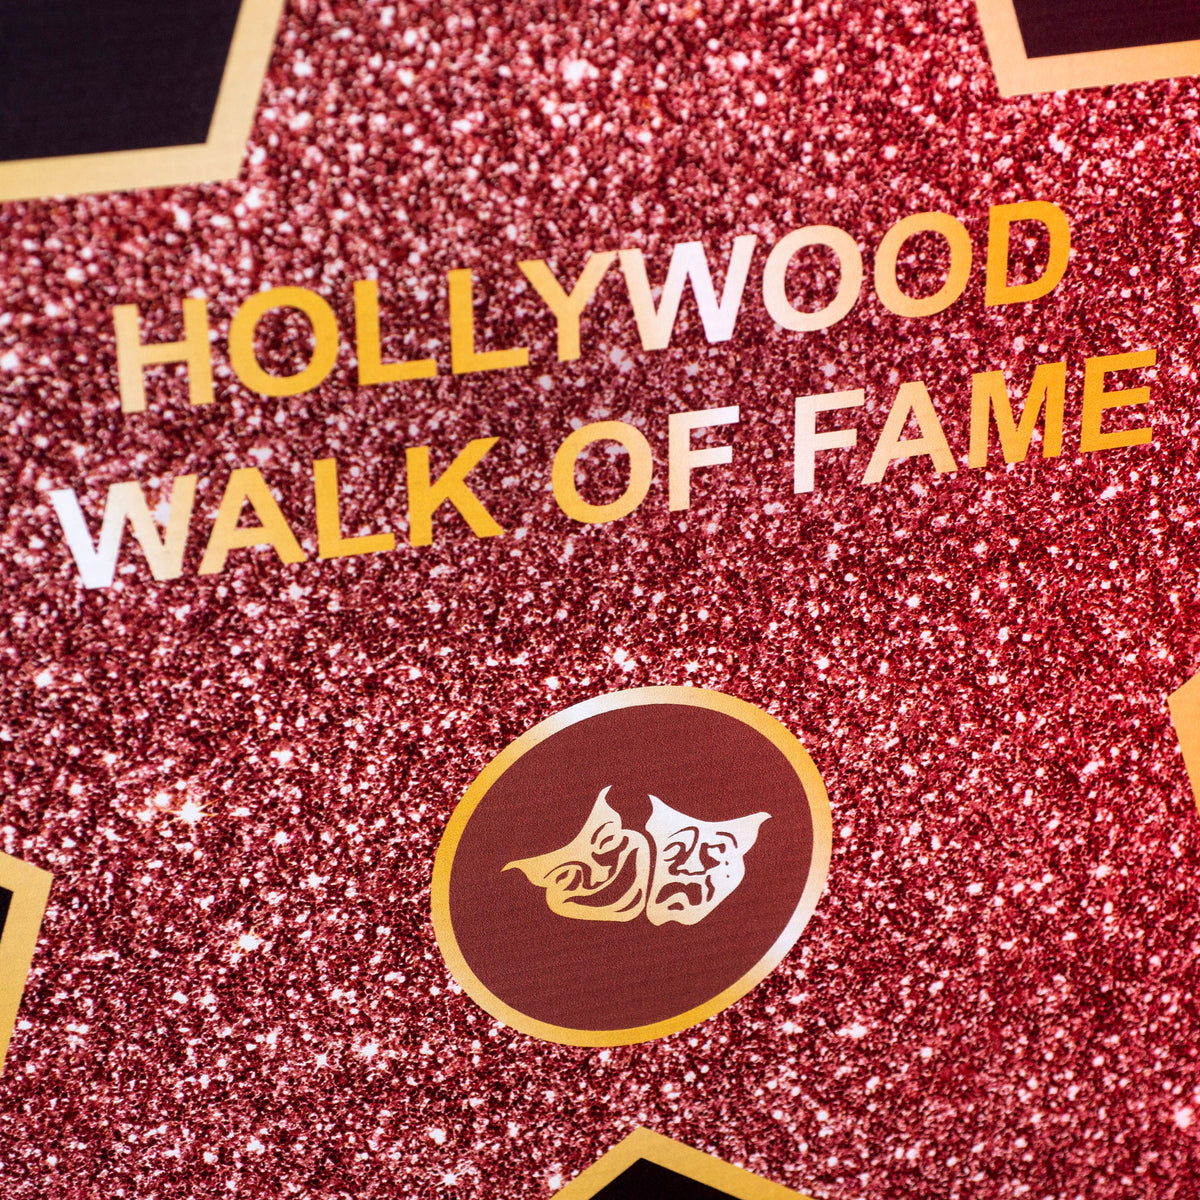 5 ft. Hollywood Walk of Fame Mask Standee